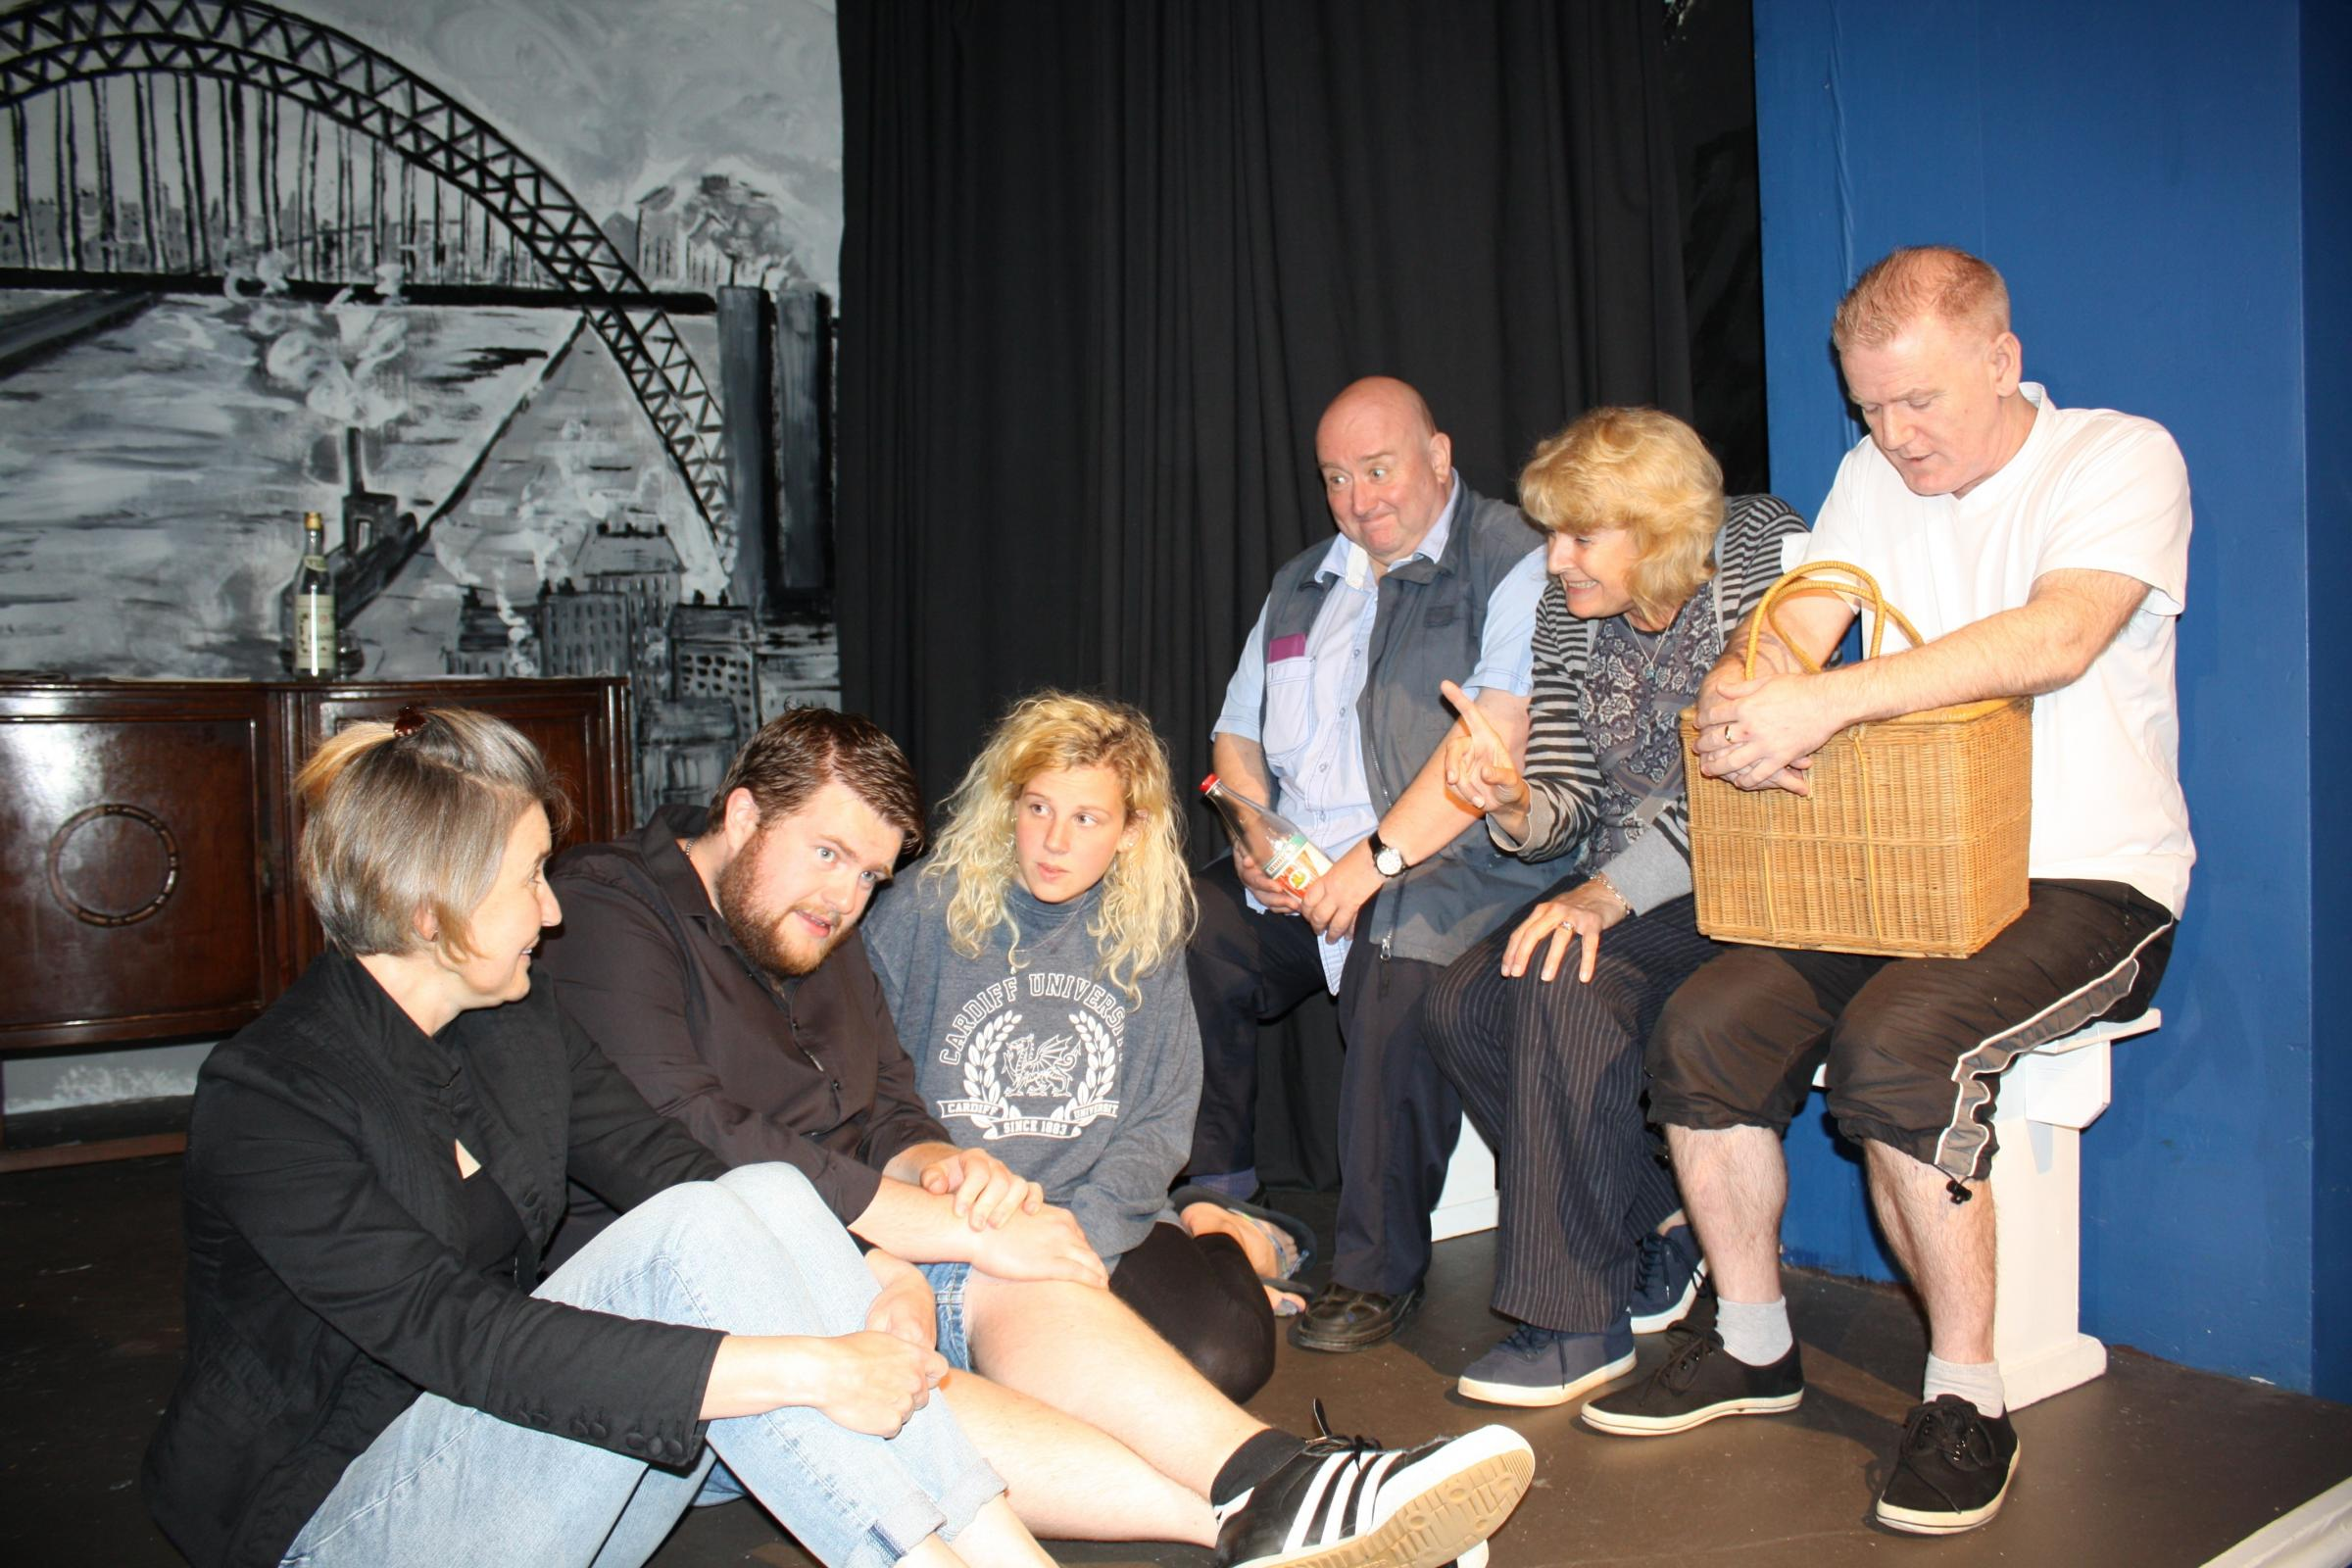 Wartime Drama To Be Brought To Life At Durham City Theatre The